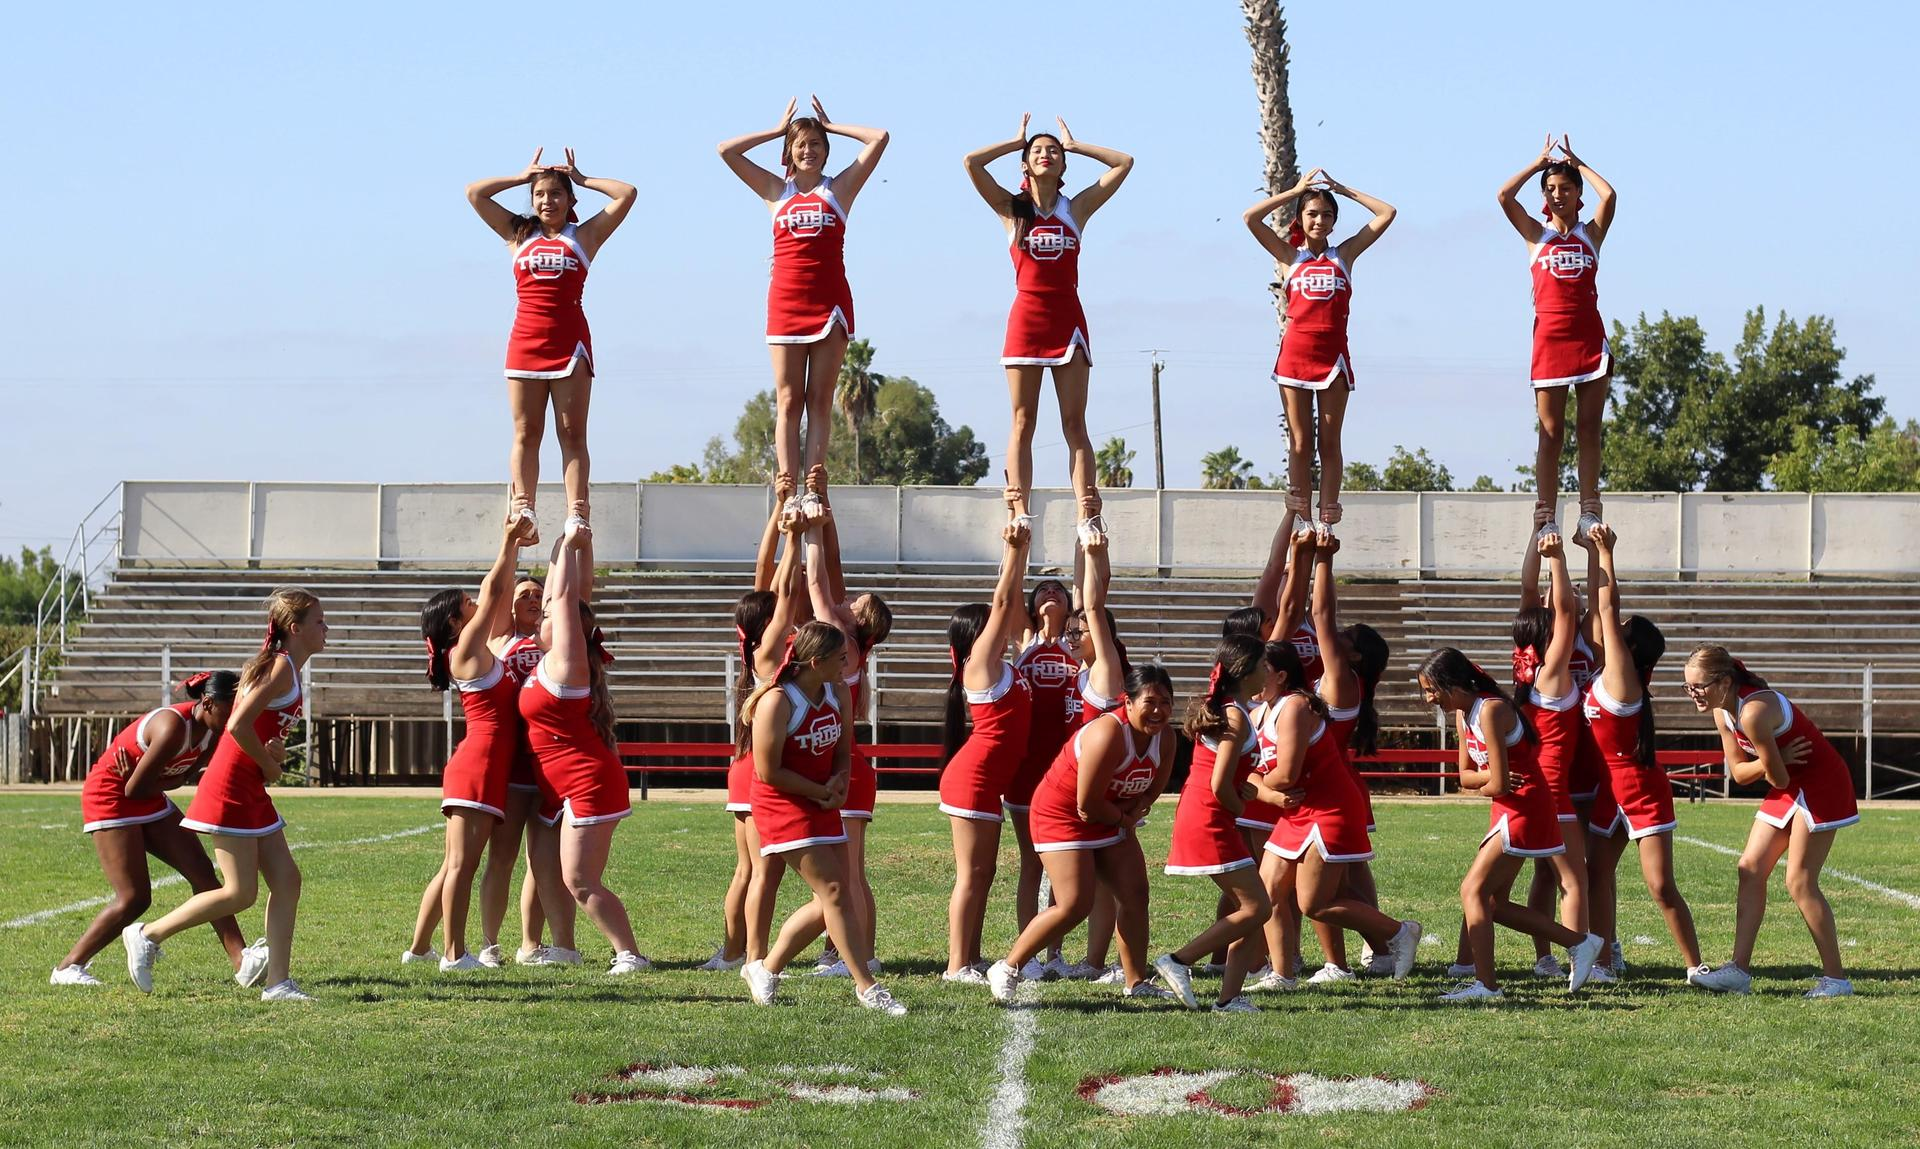 Cheer Preforming at Homecoming Rally